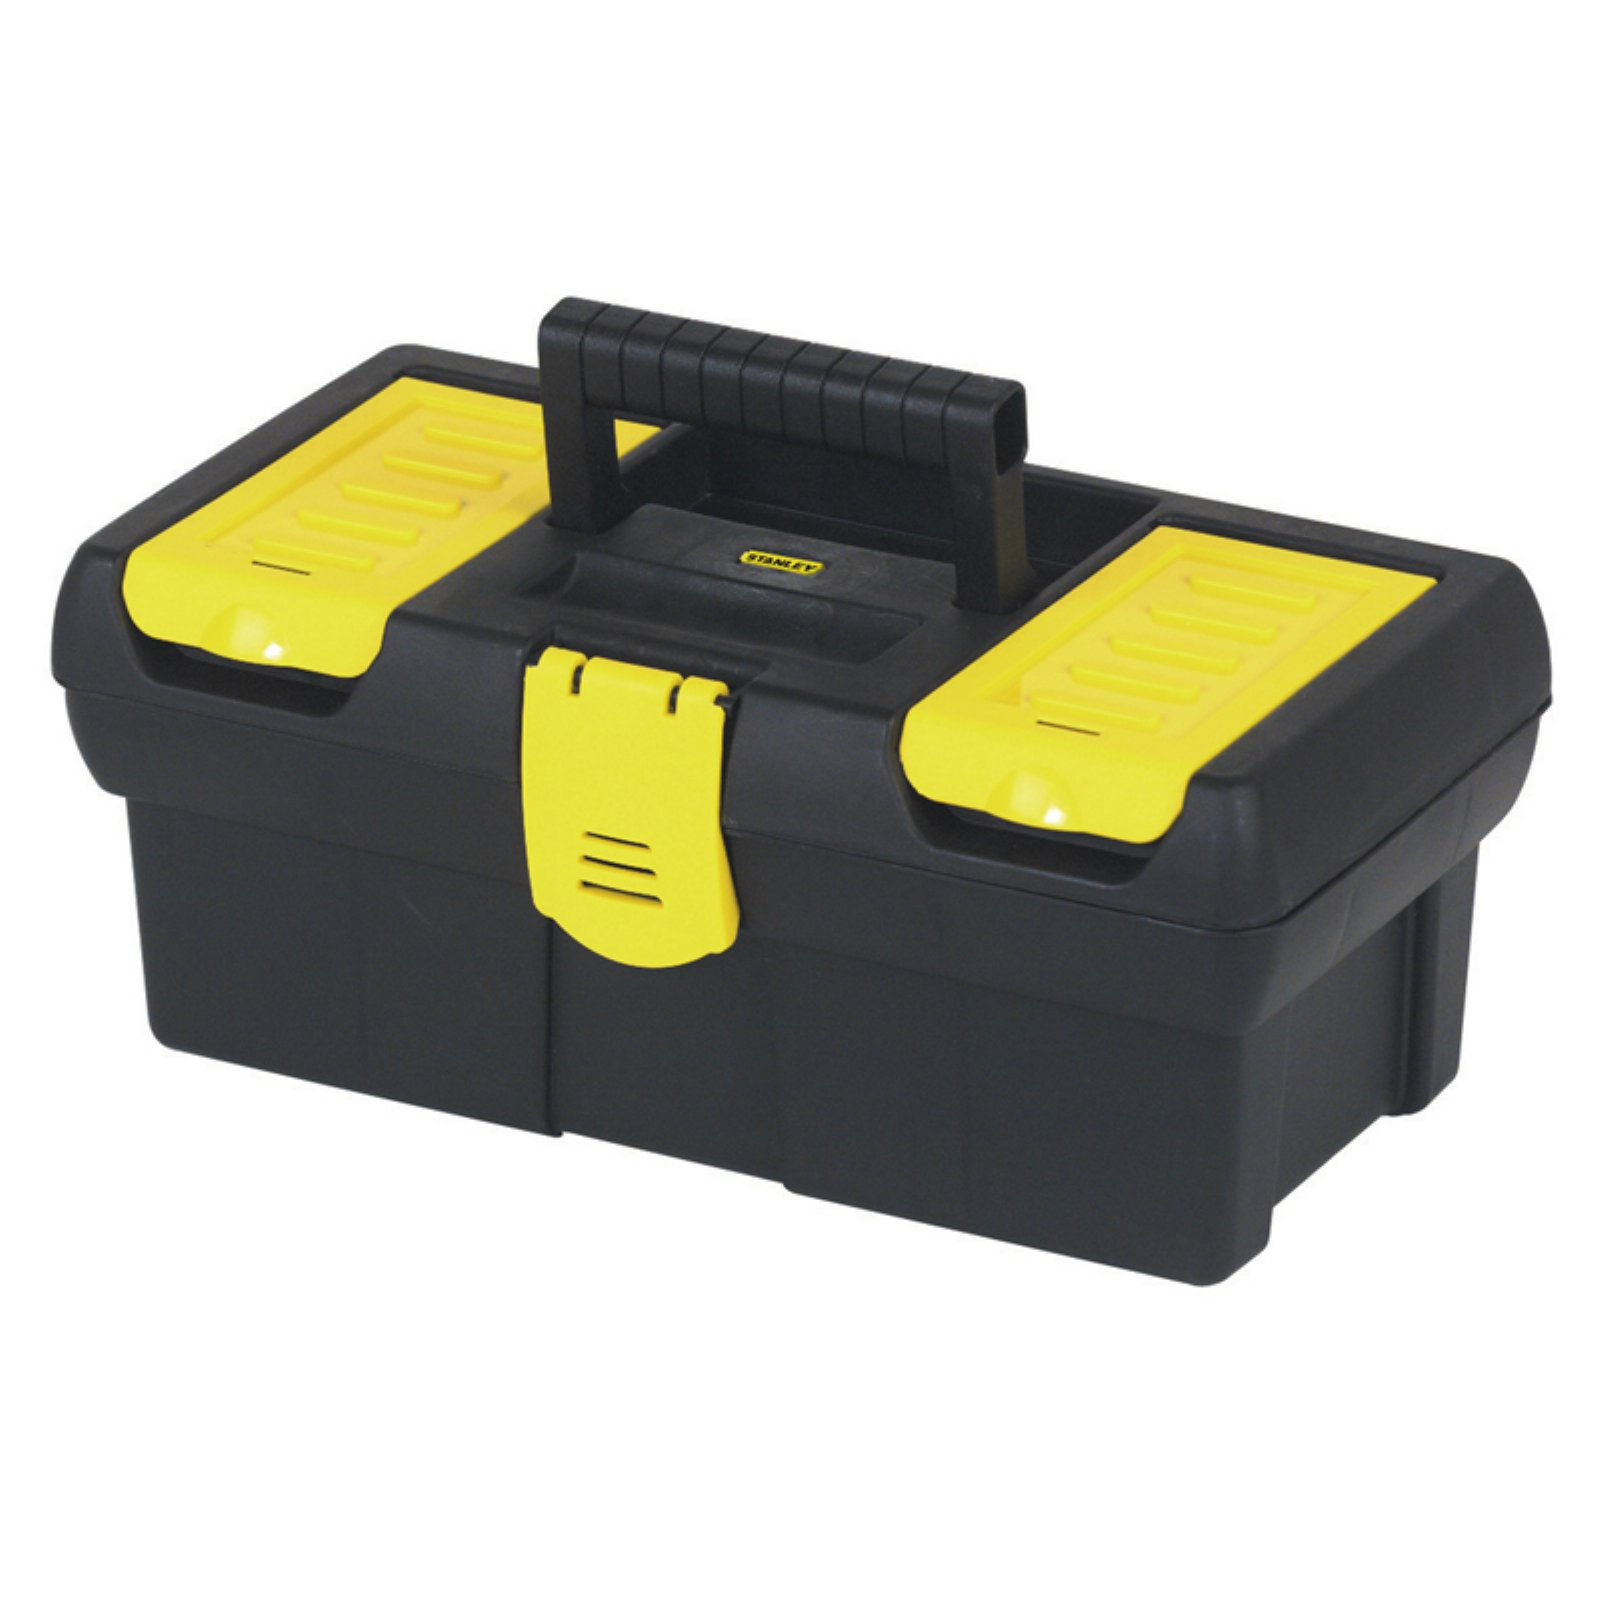 "Stanley 12.5"" Tool Box with Tray"